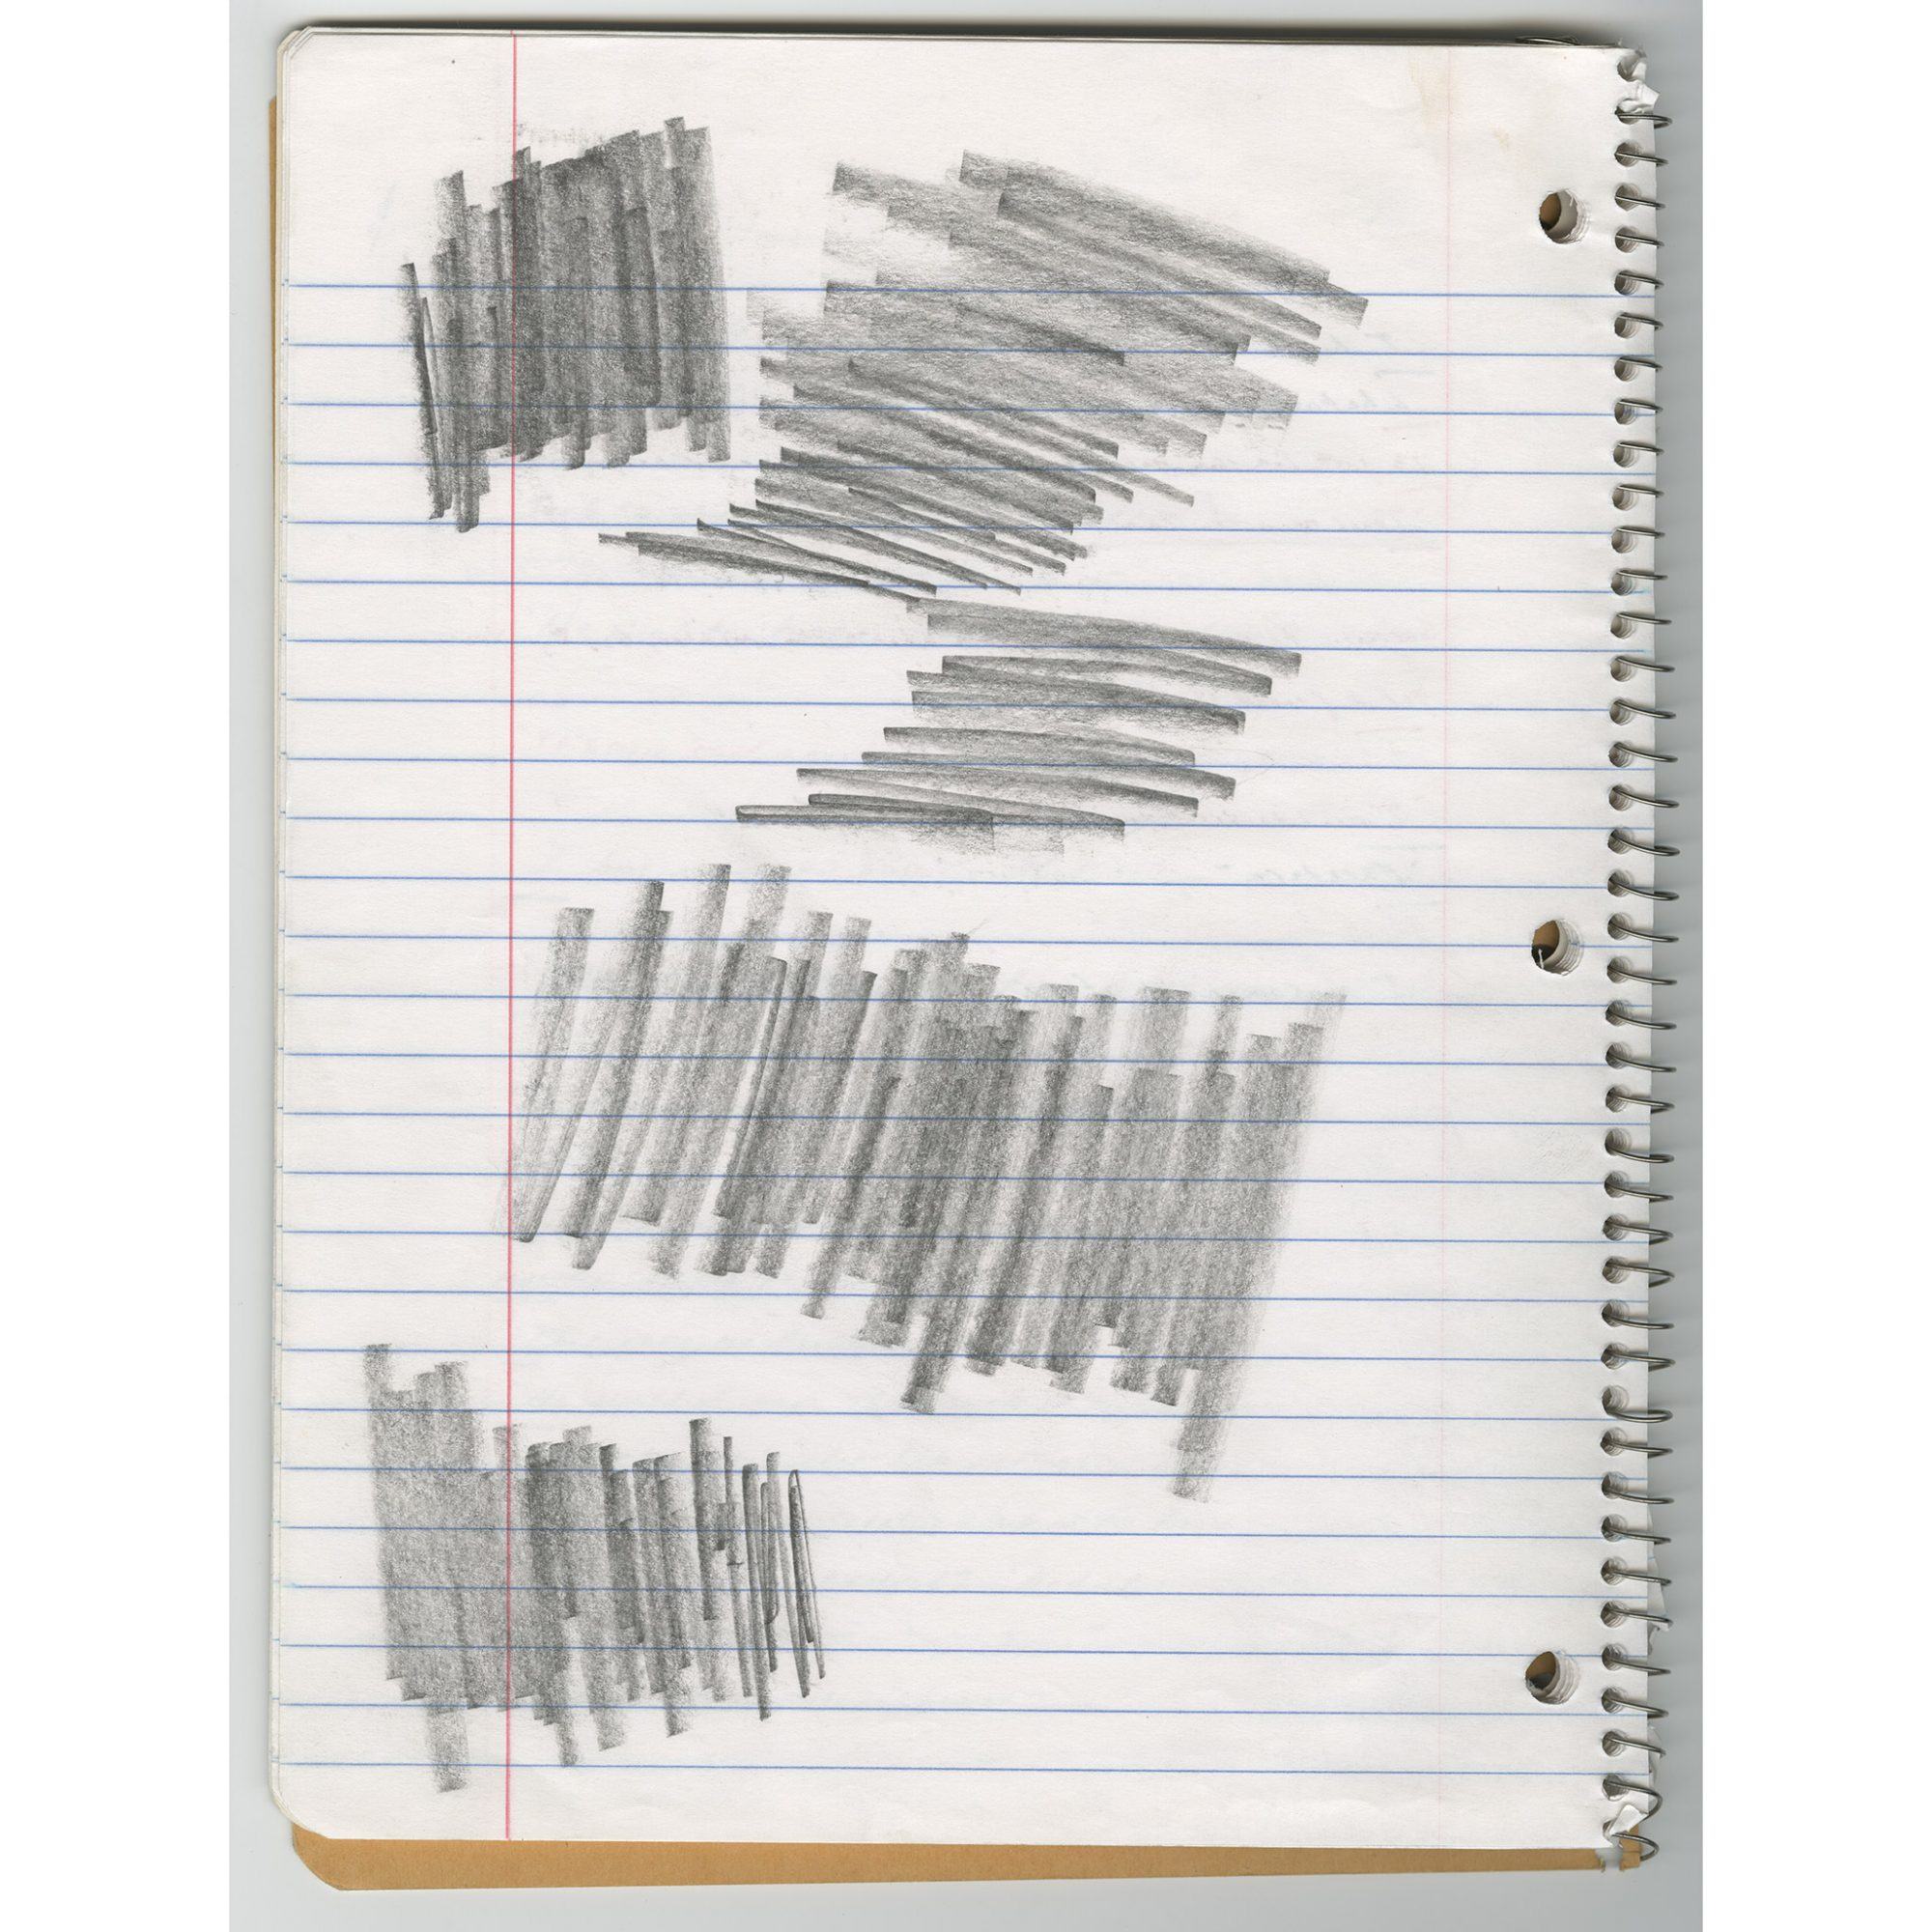 FWX WHITNEY BIENNIAL WALLACE NOTEBOOK